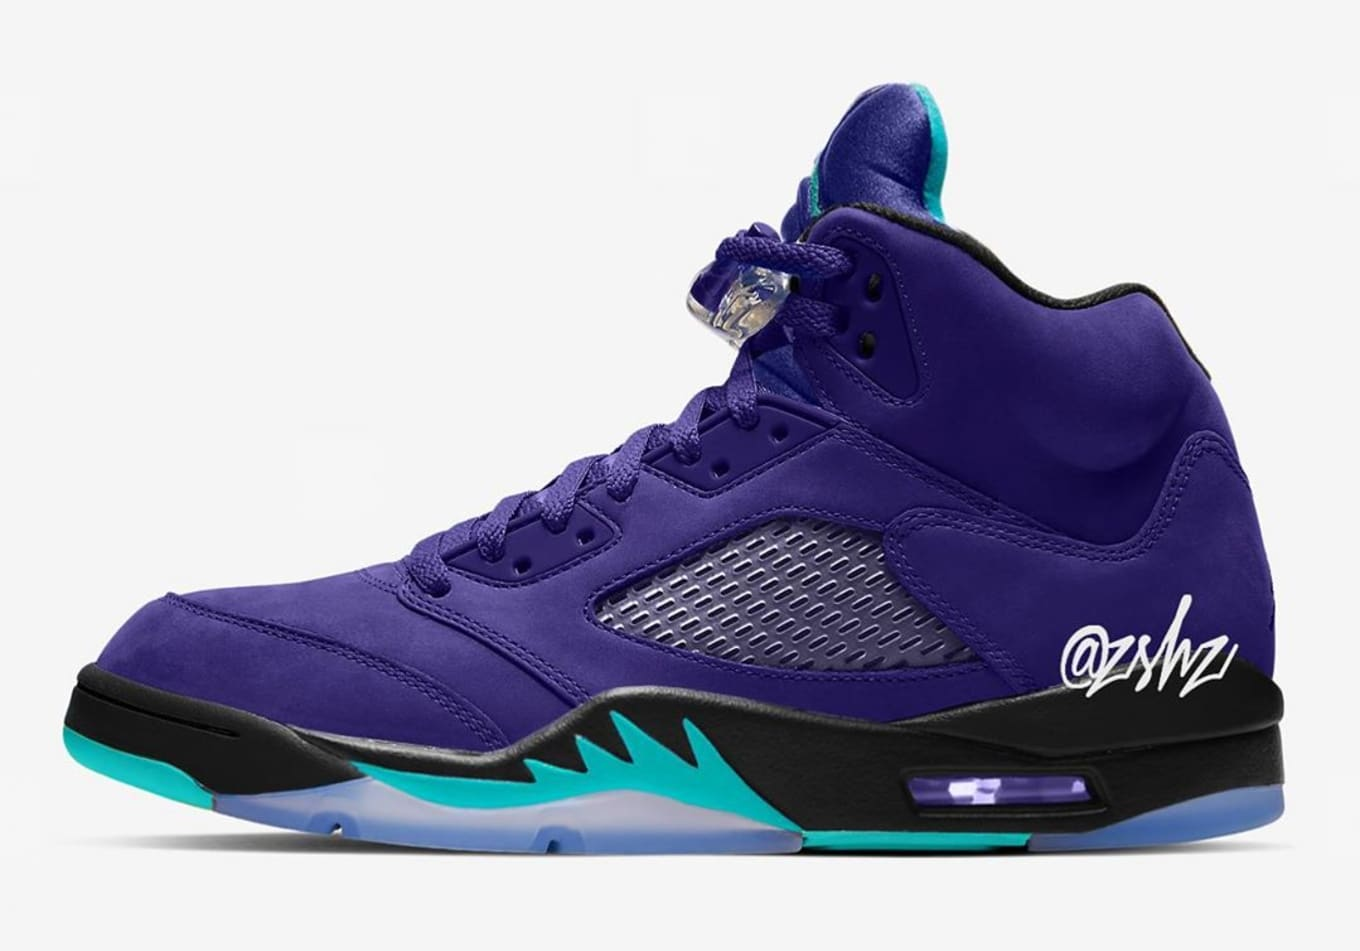 Air Jordan Calendar 2020 Air Jordan 5 'Grape Ice' Grape Ice/Black Clear New Emerald 136027